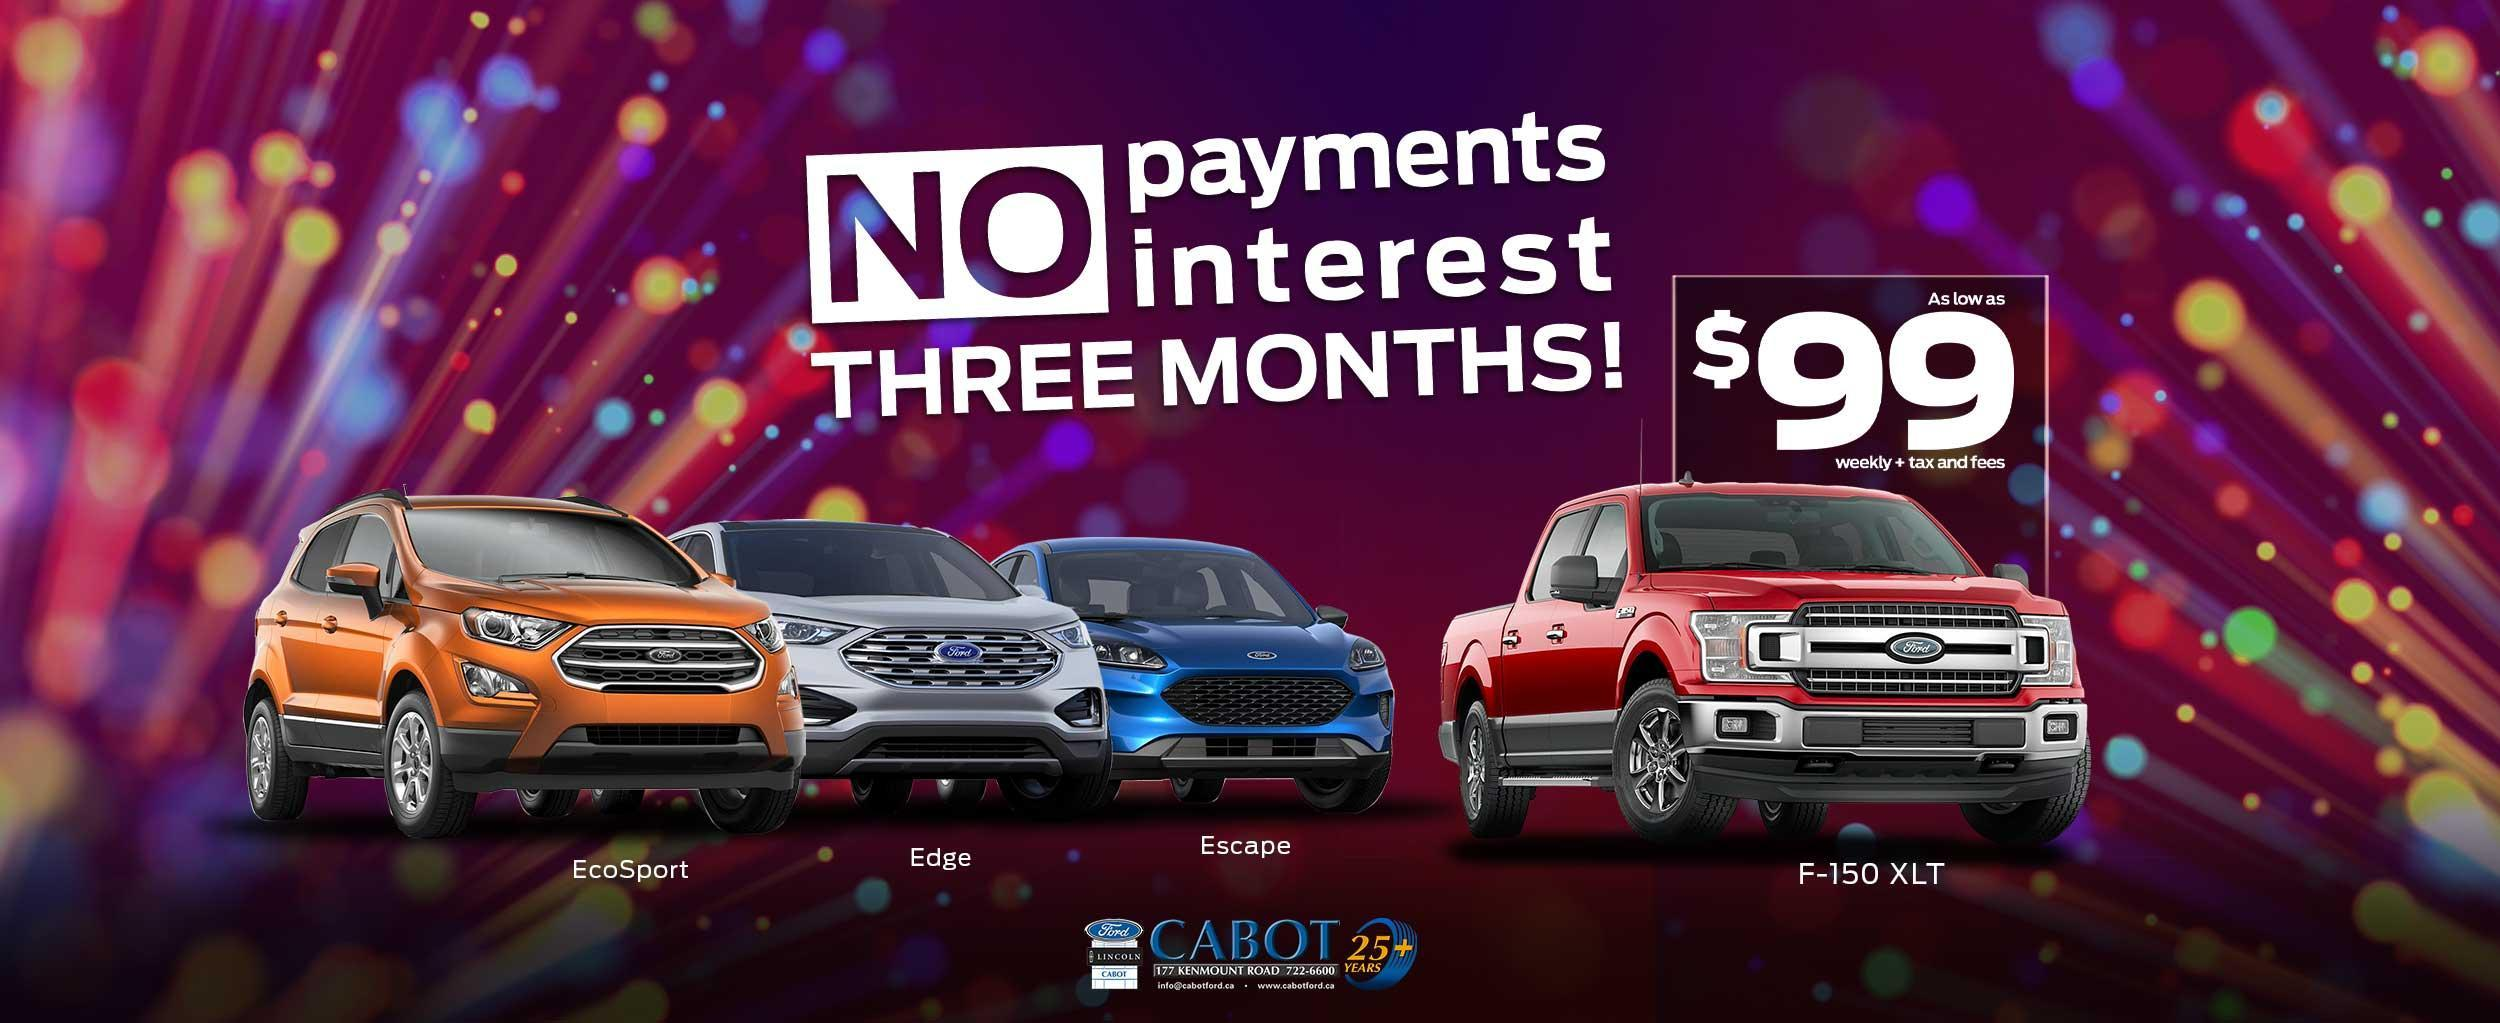 NO PAYMENTS OR INTEREST FOR THREE MONTHS, on a 2019 F-150 XLT CrewCab 4x4, XTR pkg & power group, as low as $99 weekly + tax & fees! Or a Ford ECOSPORT, EDGE, OR ESCAPE!